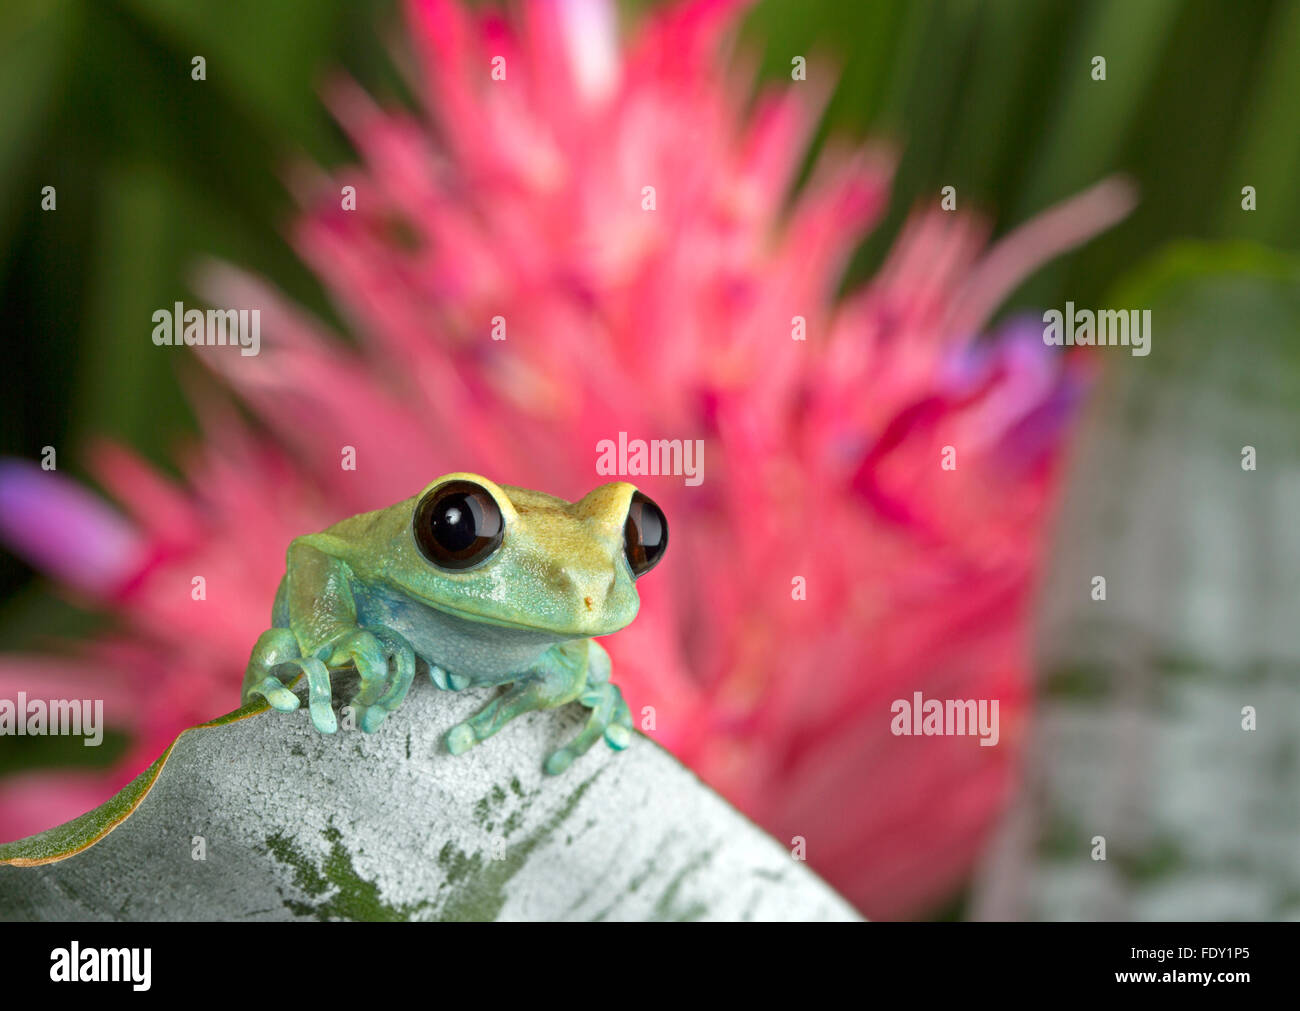 Tree Frog on green foliage - Stock Image